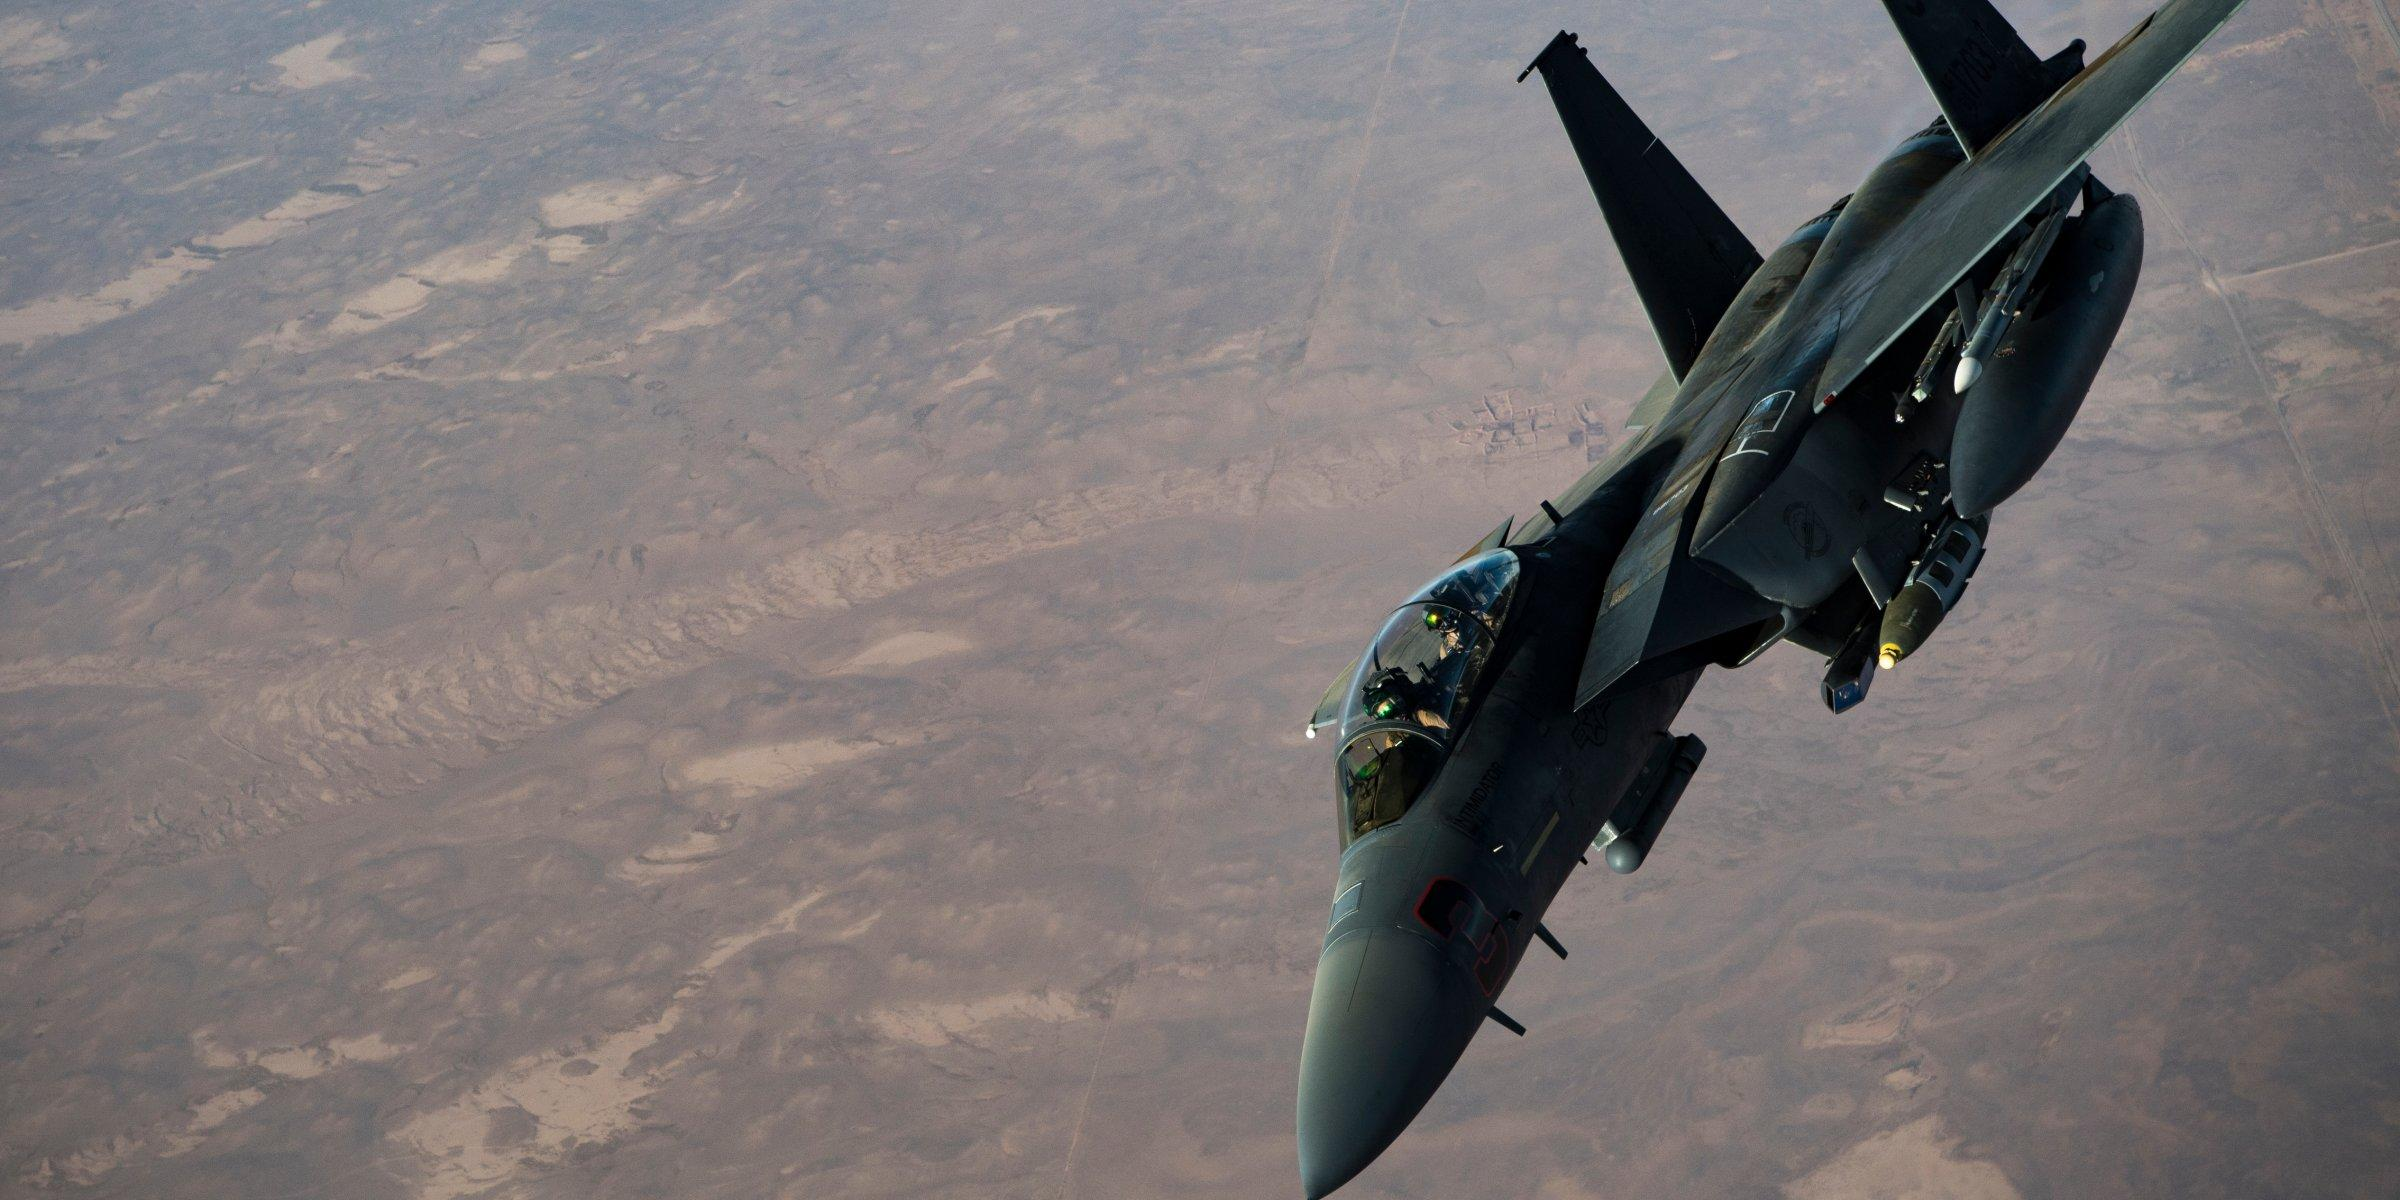 US jets smashed an island ISIS was using 'like a hotel' and troops found rockets and bombs stashed in caves